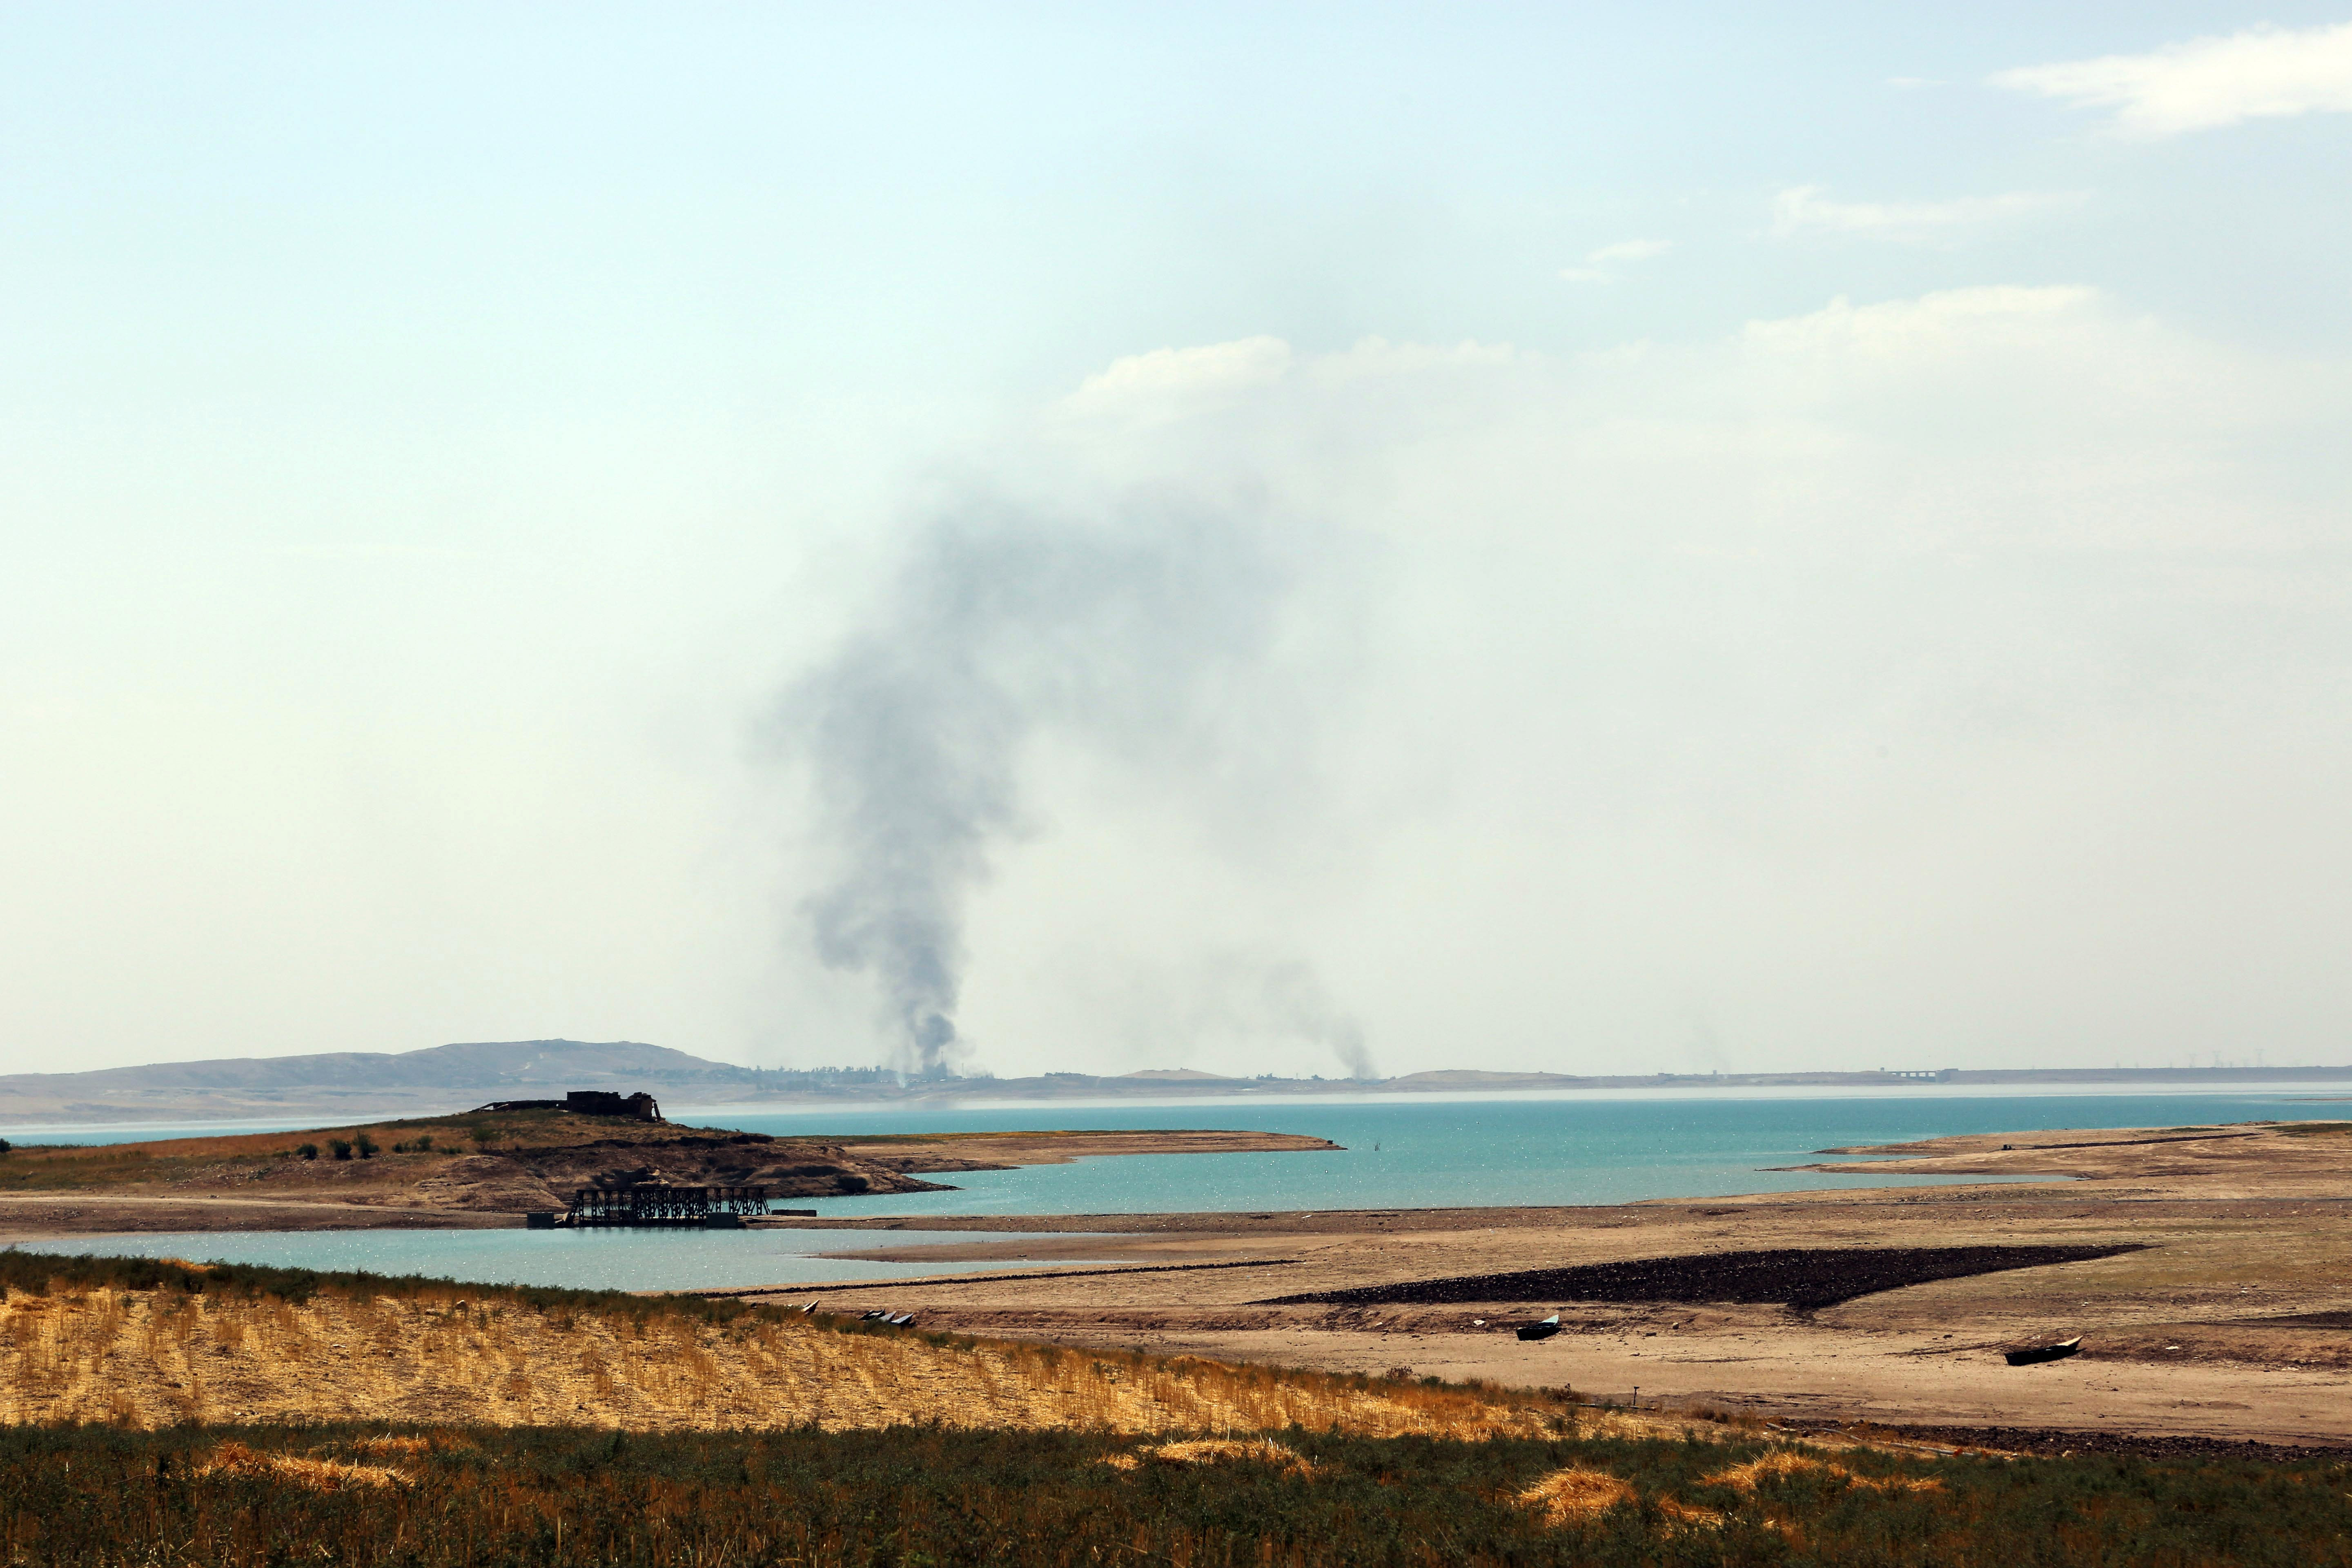 Smoke rises during airstrikes targeting Islamic State militants at the Mosul Dam outside Mosul, Iraq, Monday, Aug. 18, 2014.